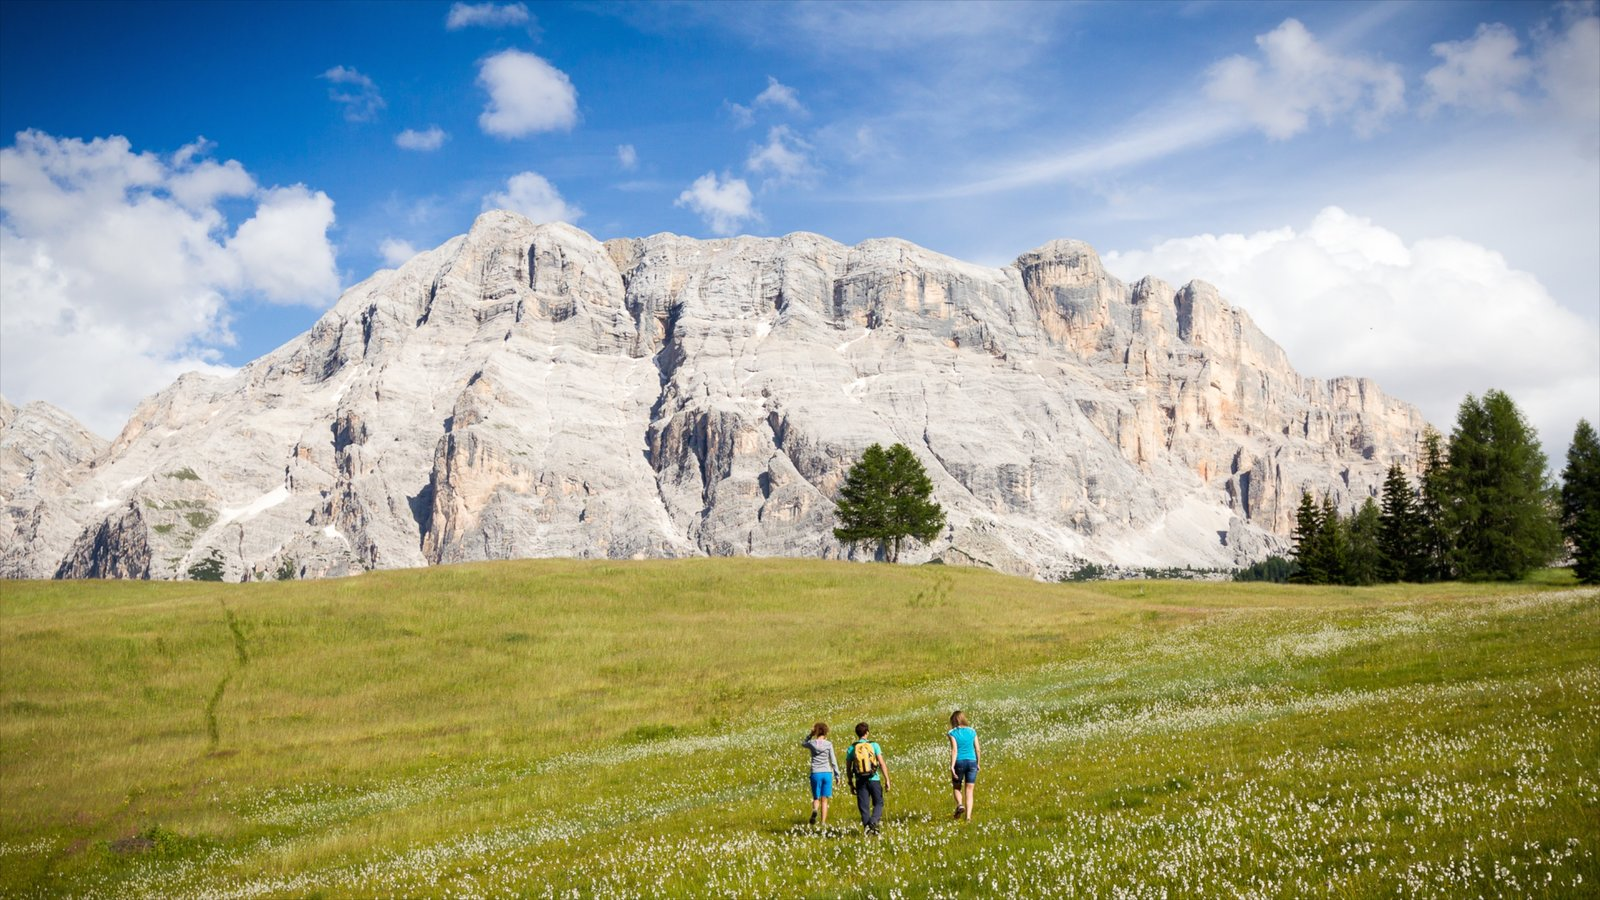 Alta Badia which includes mountains and tranquil scenes